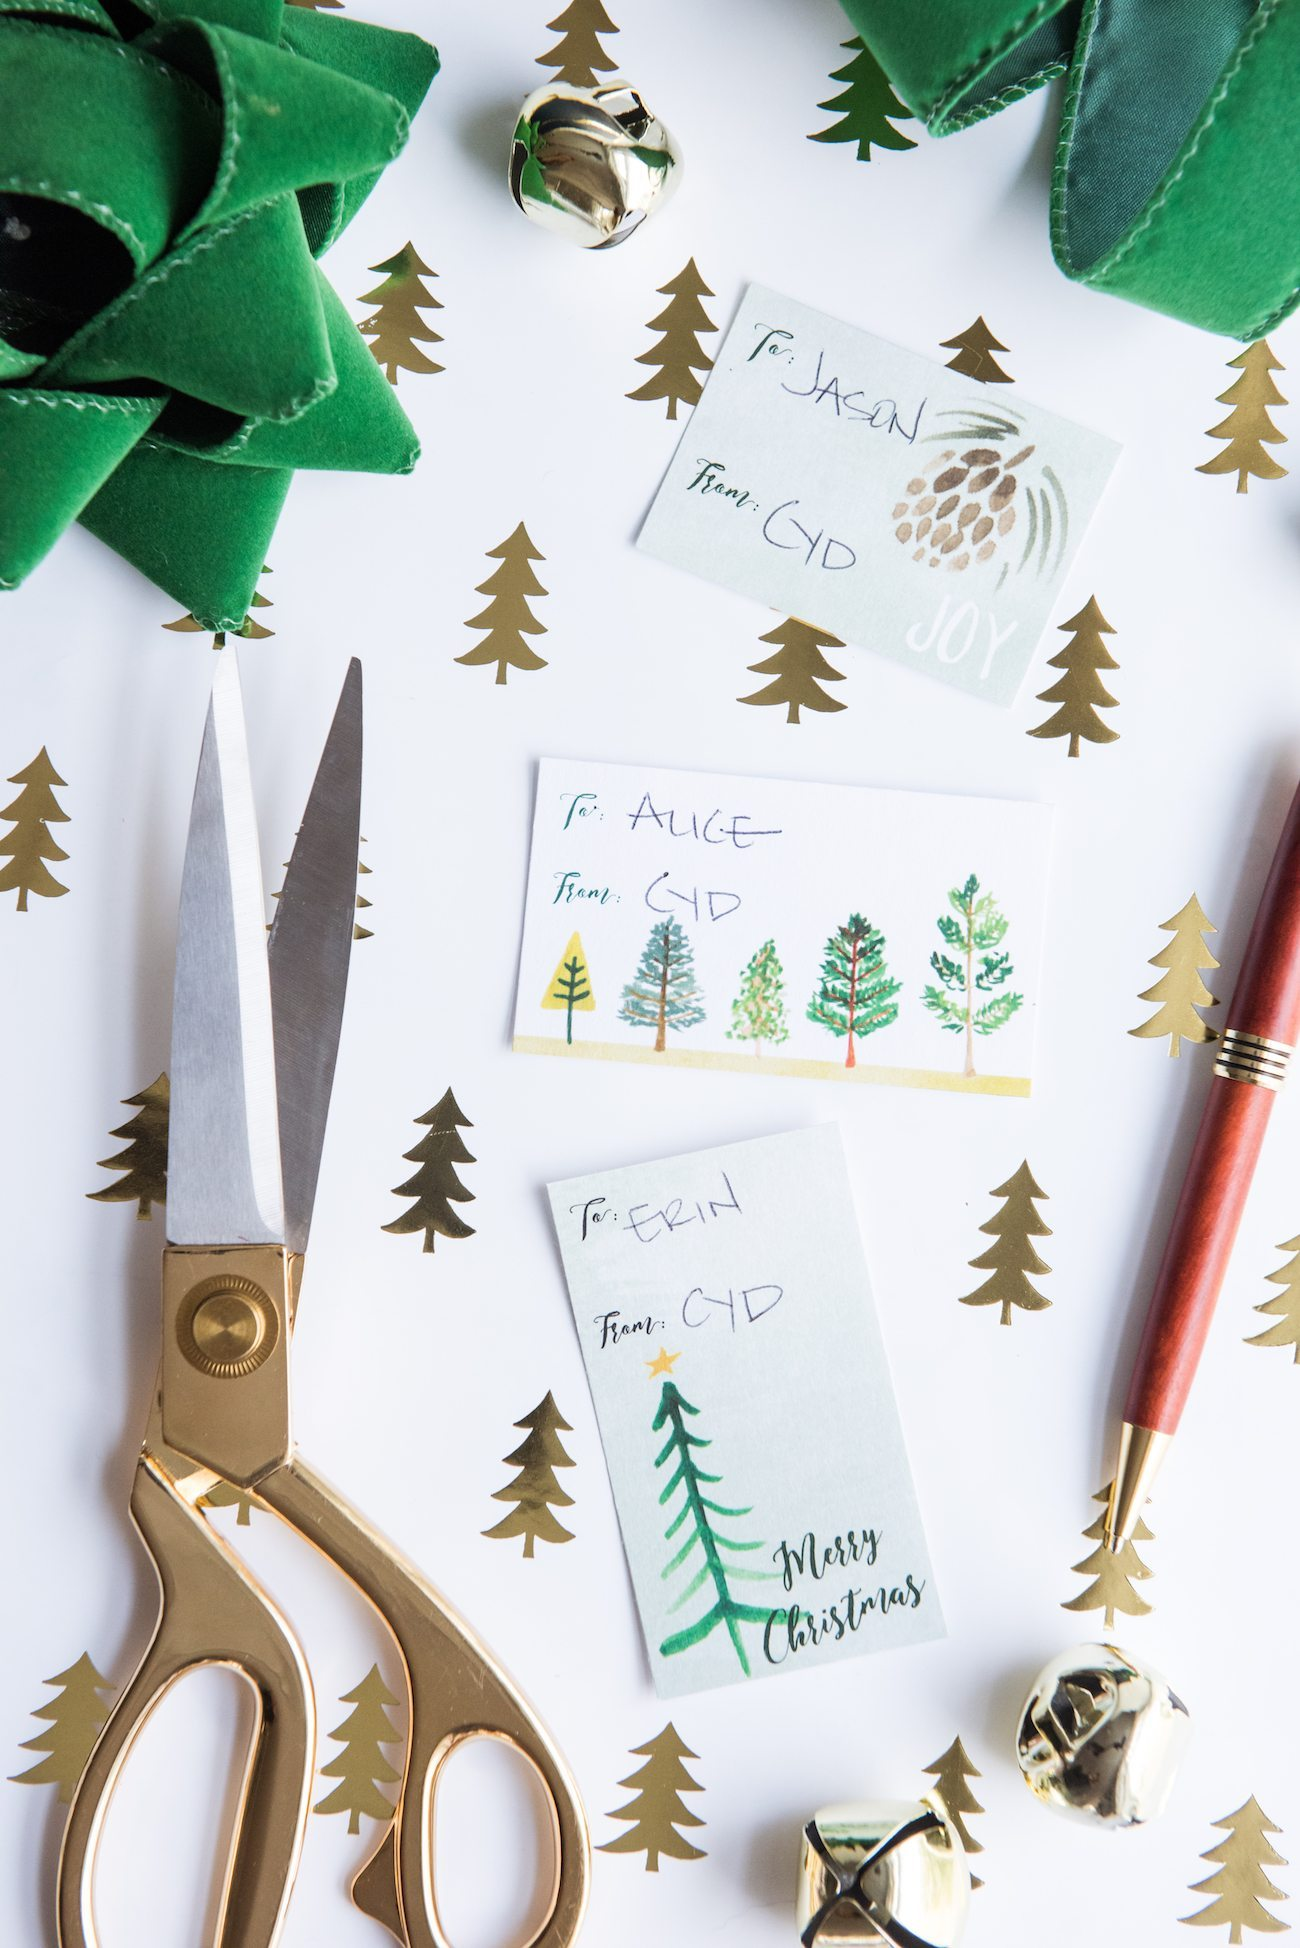 Pretty Printable Hand Painted Gift Tags | Christmas gift tags, holiday printables, free gift tags, entertaining ideas, holiday party ideas and more from @cydconverse